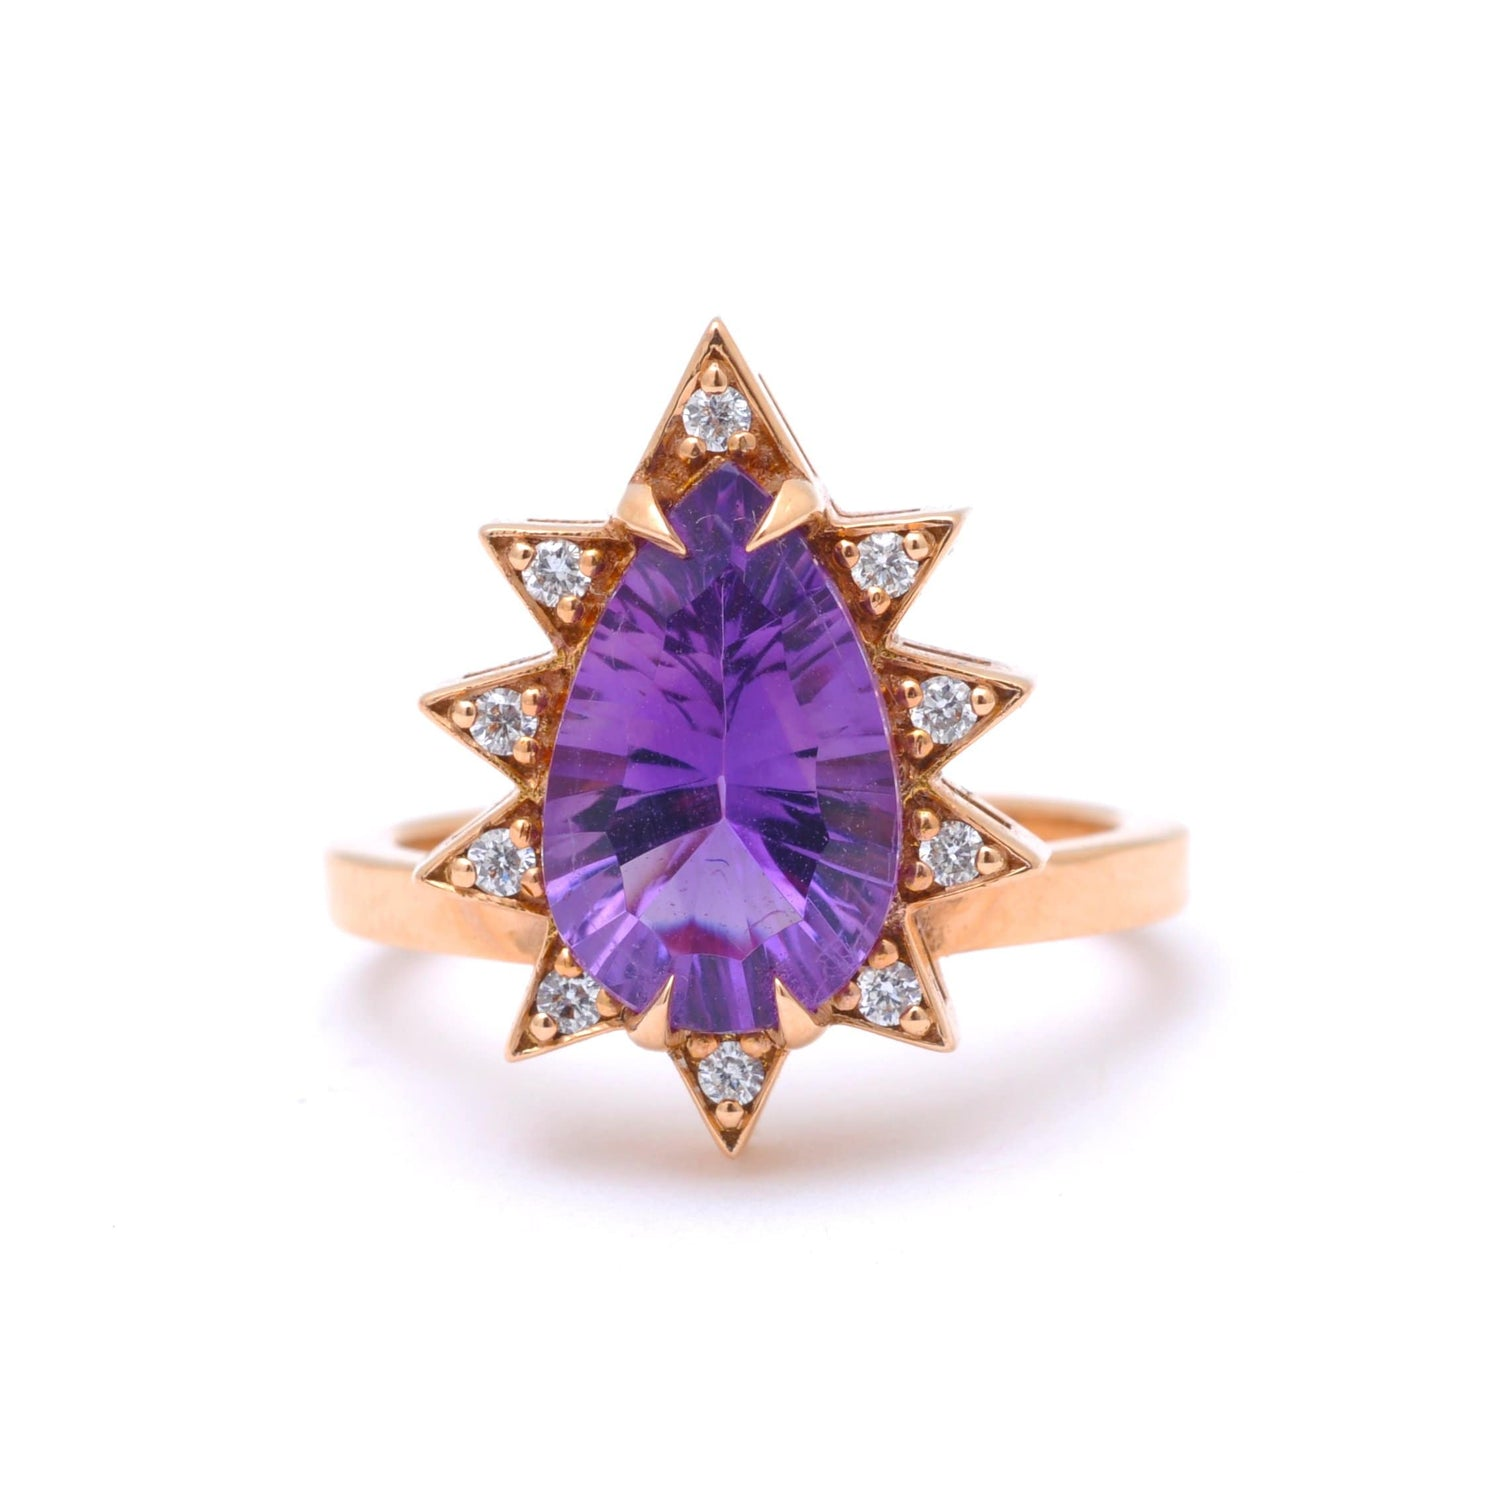 Fancy Pear Cut Amethyst Diamond Starburst Ring